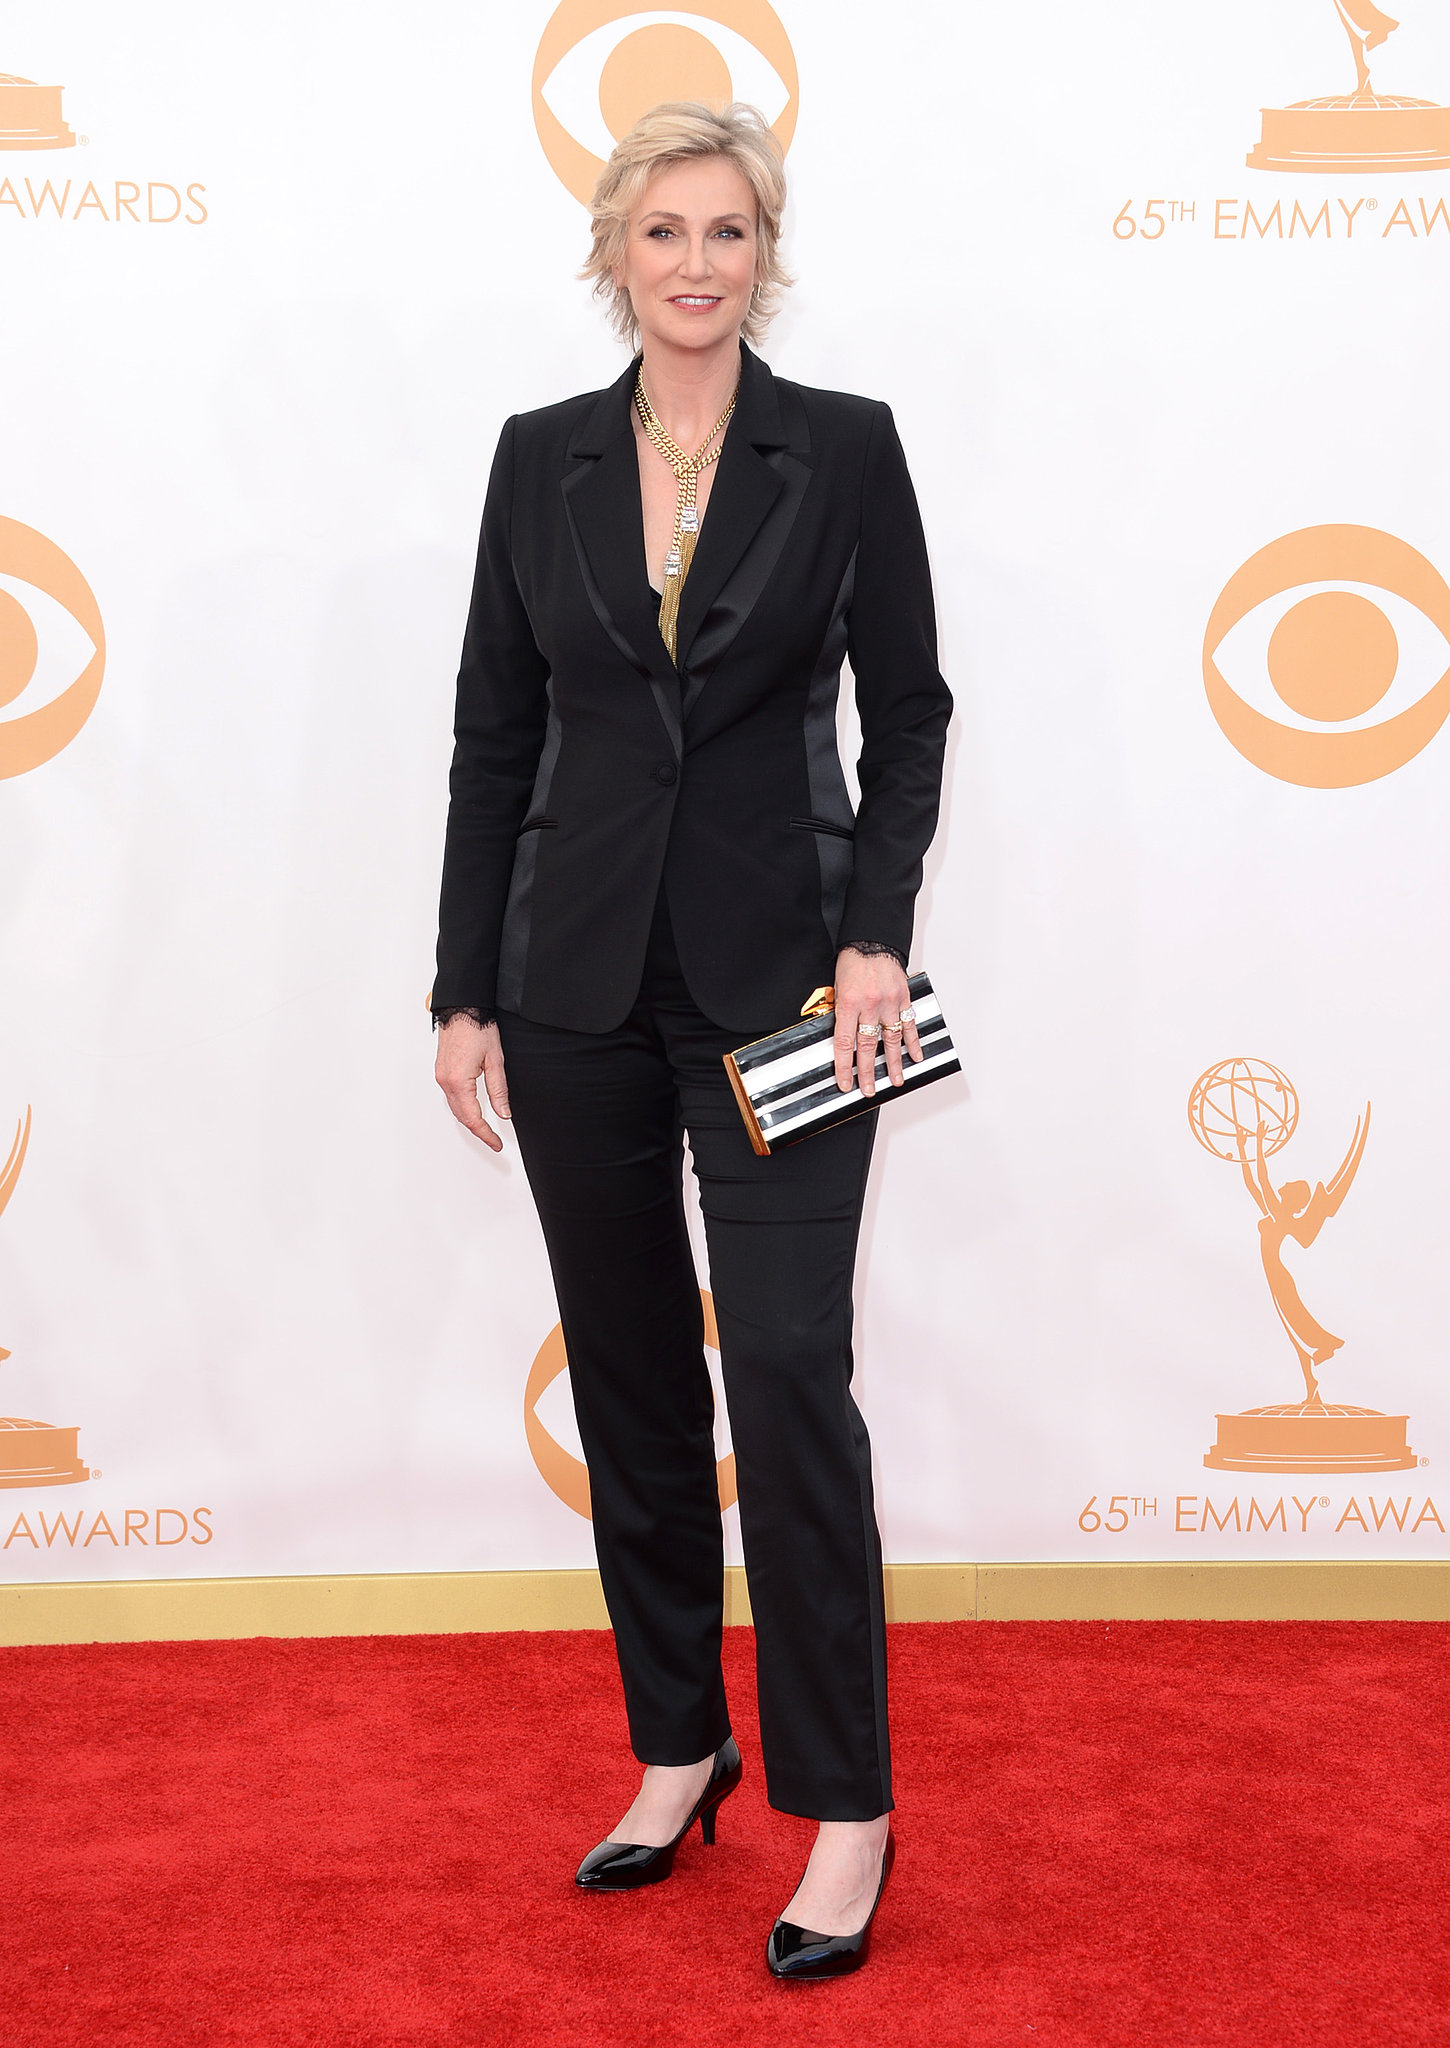 Jane Lynch attended the 2013 Emmy Awards.